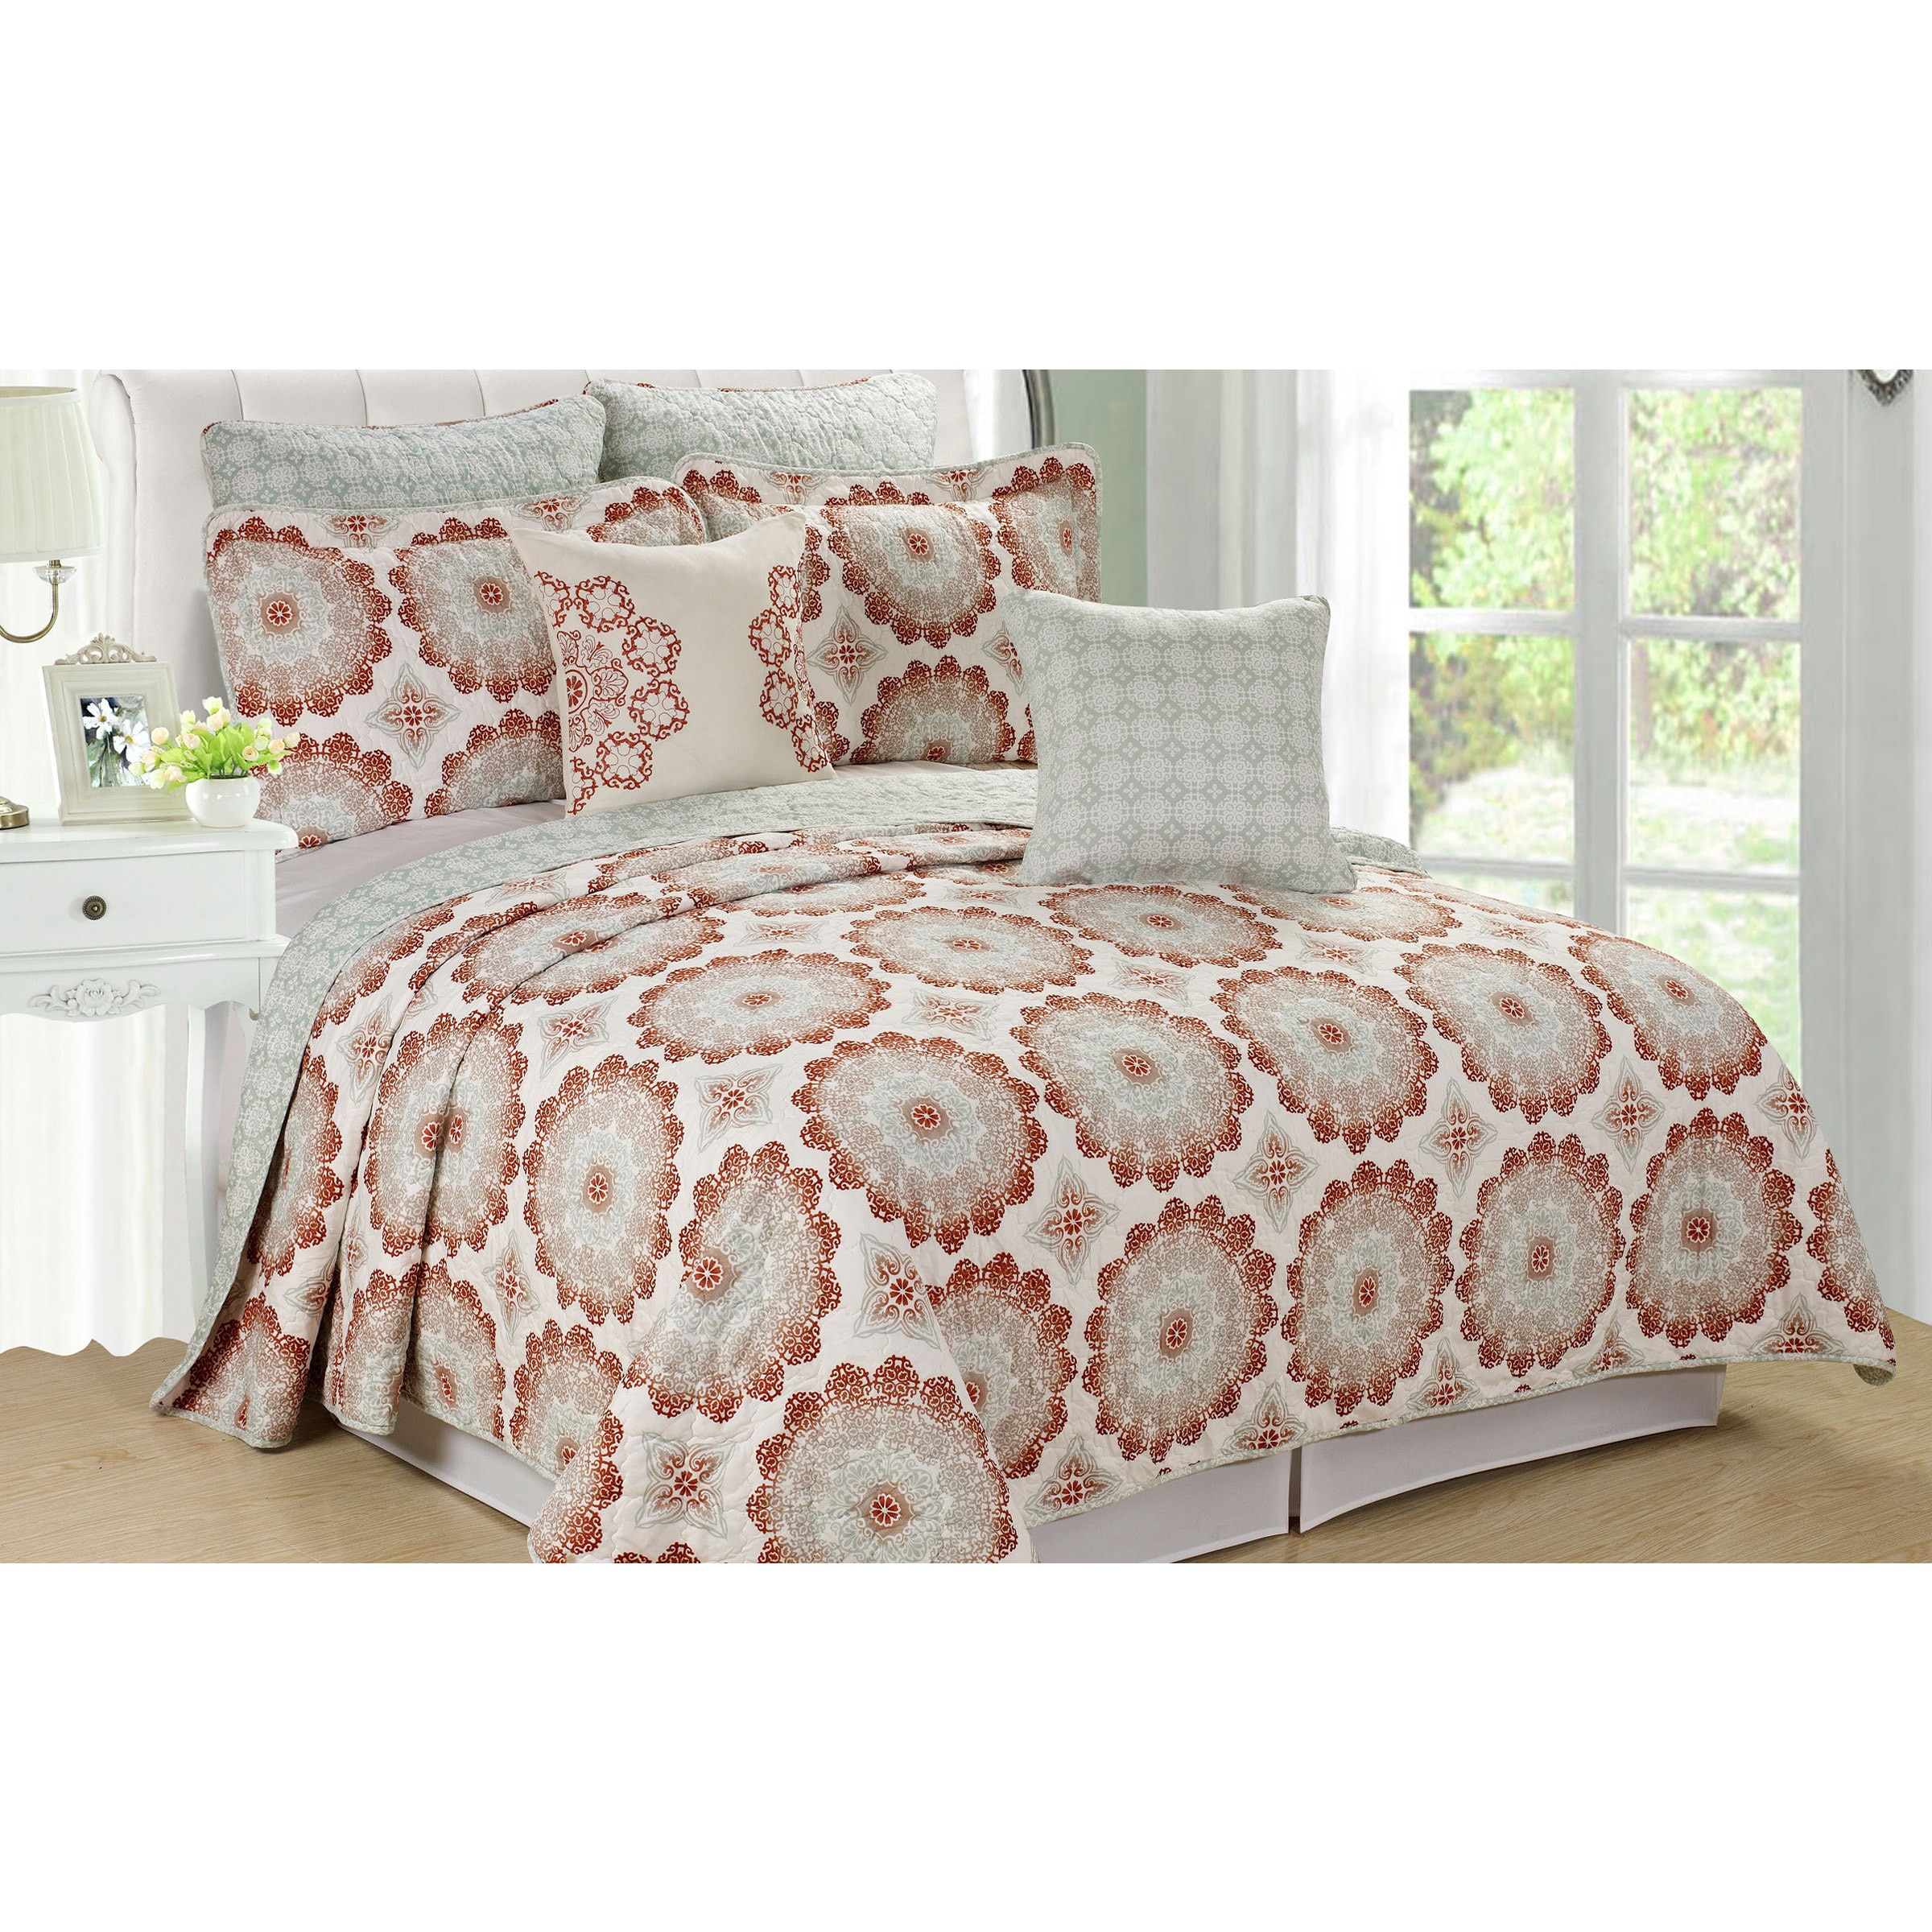 quilted oversized cote azur cream d grande quilt bedspread light bohemian p